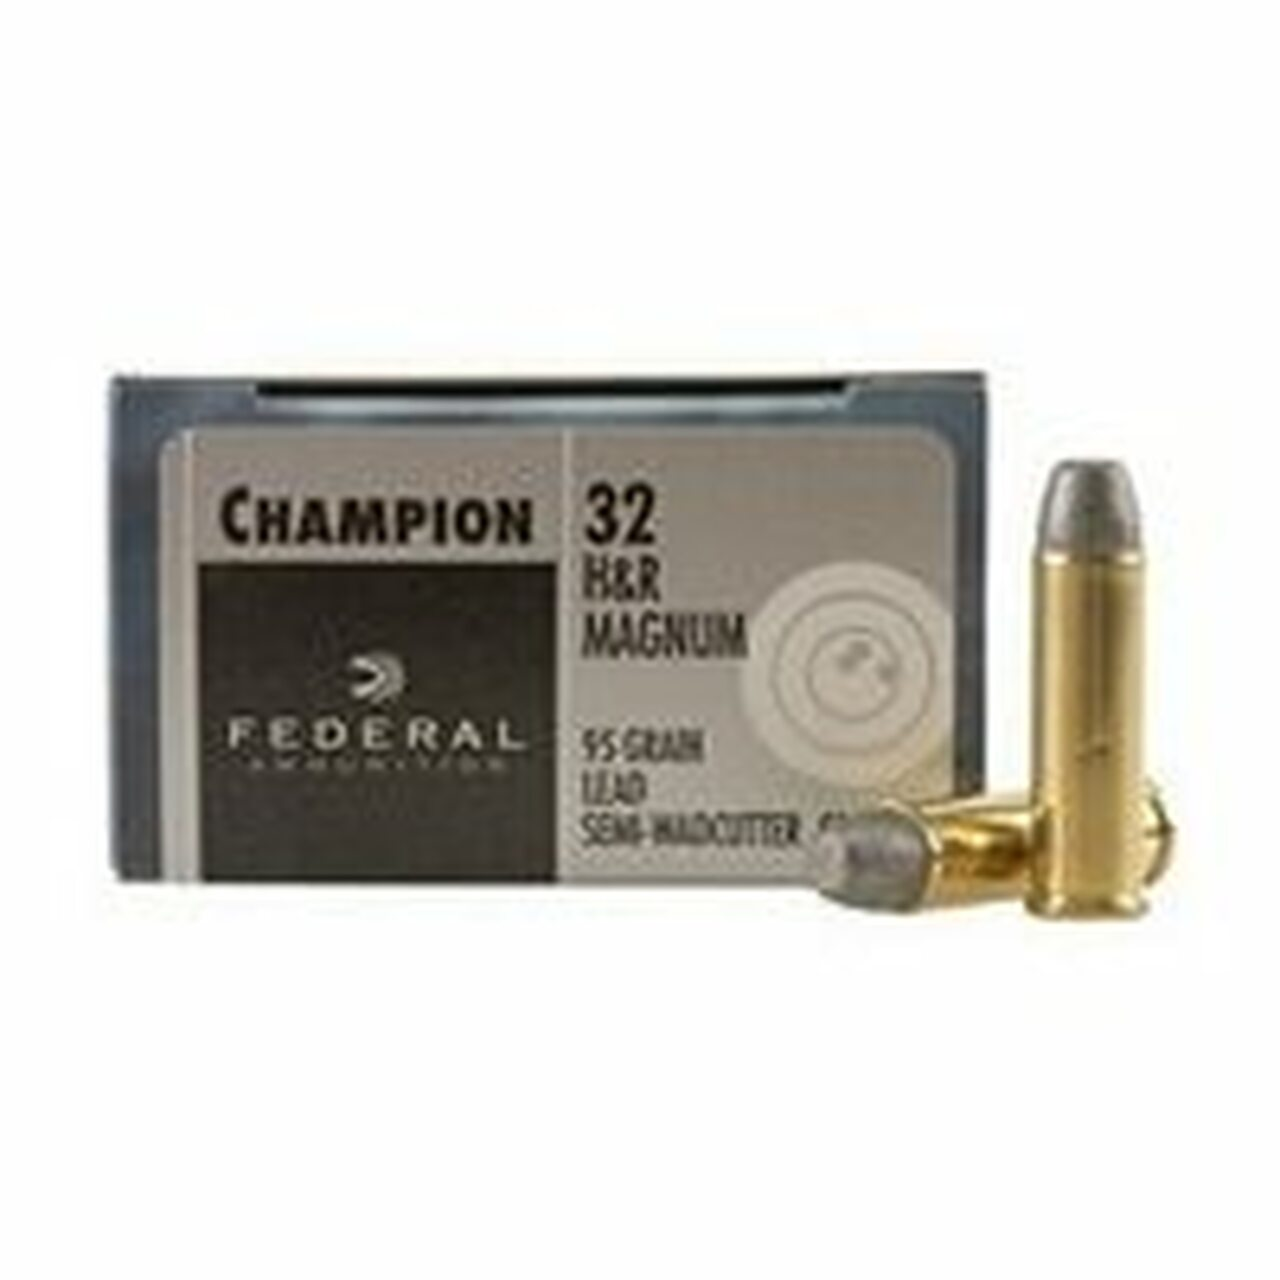 Handgun Ammo Cases - Best Ammo Deals With Free Shipping